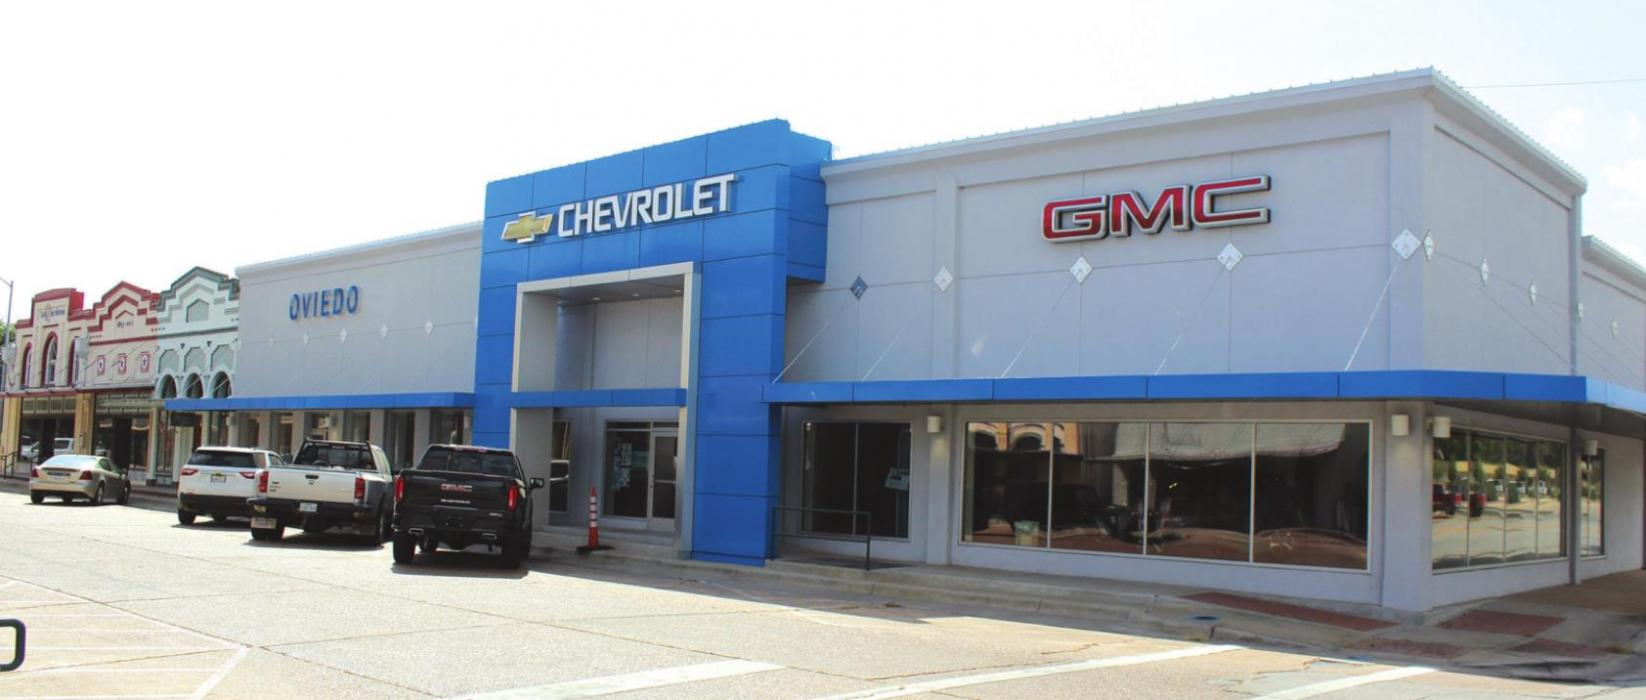 LG Chevrolet Dealership Moving Out of Downtown and to the Bypass